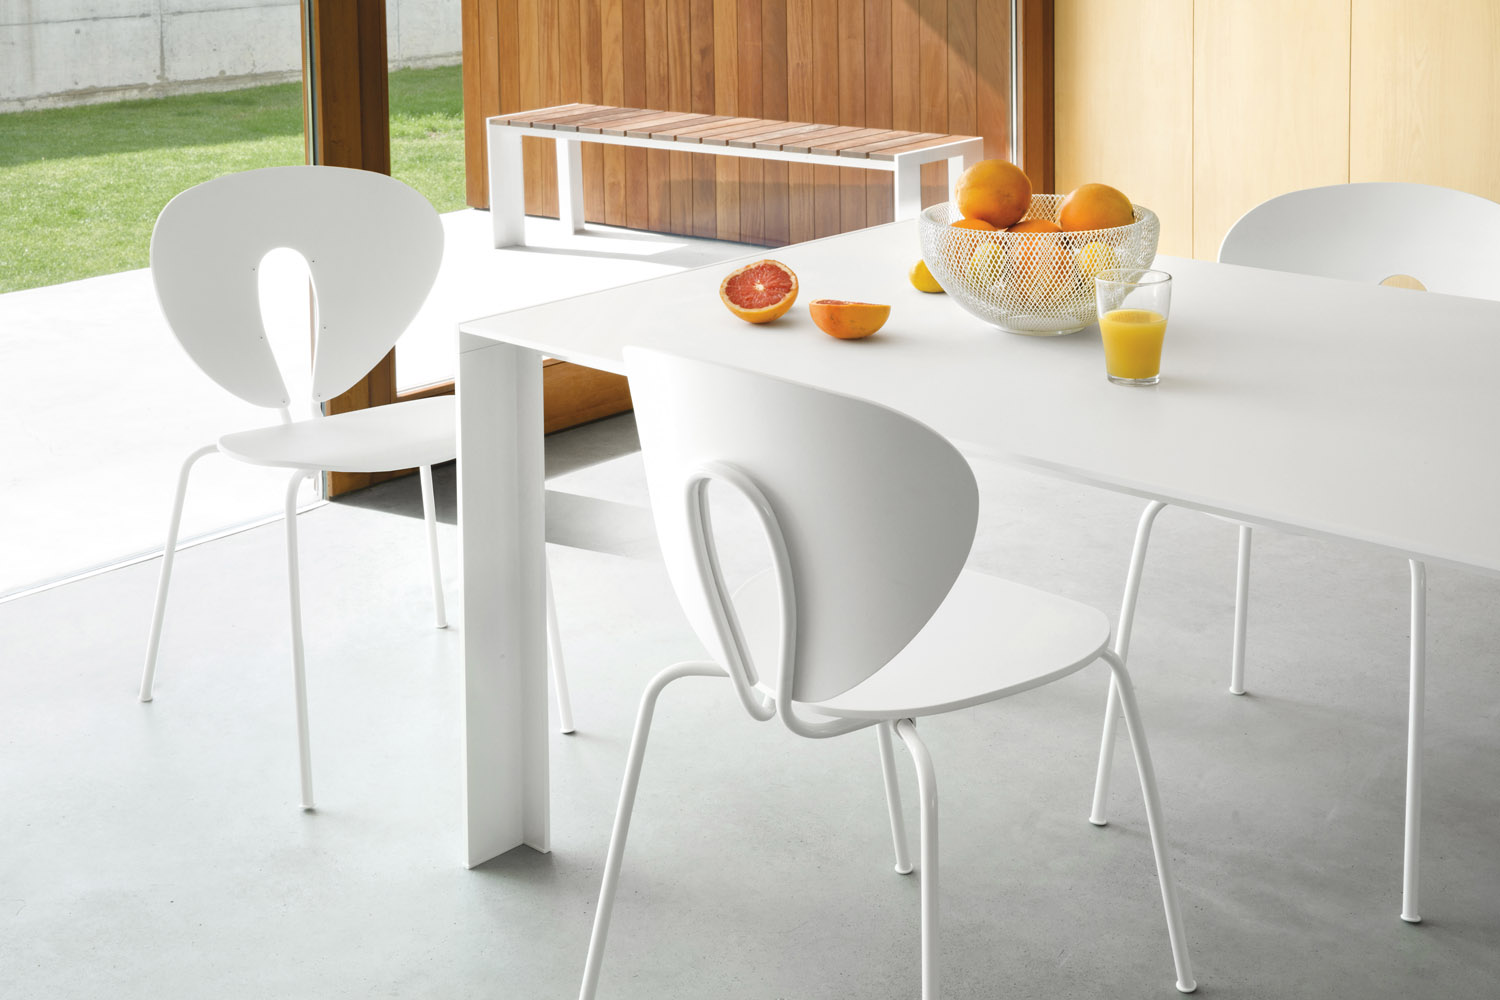 Design Chairs And Tables For Dining Rooms Stua